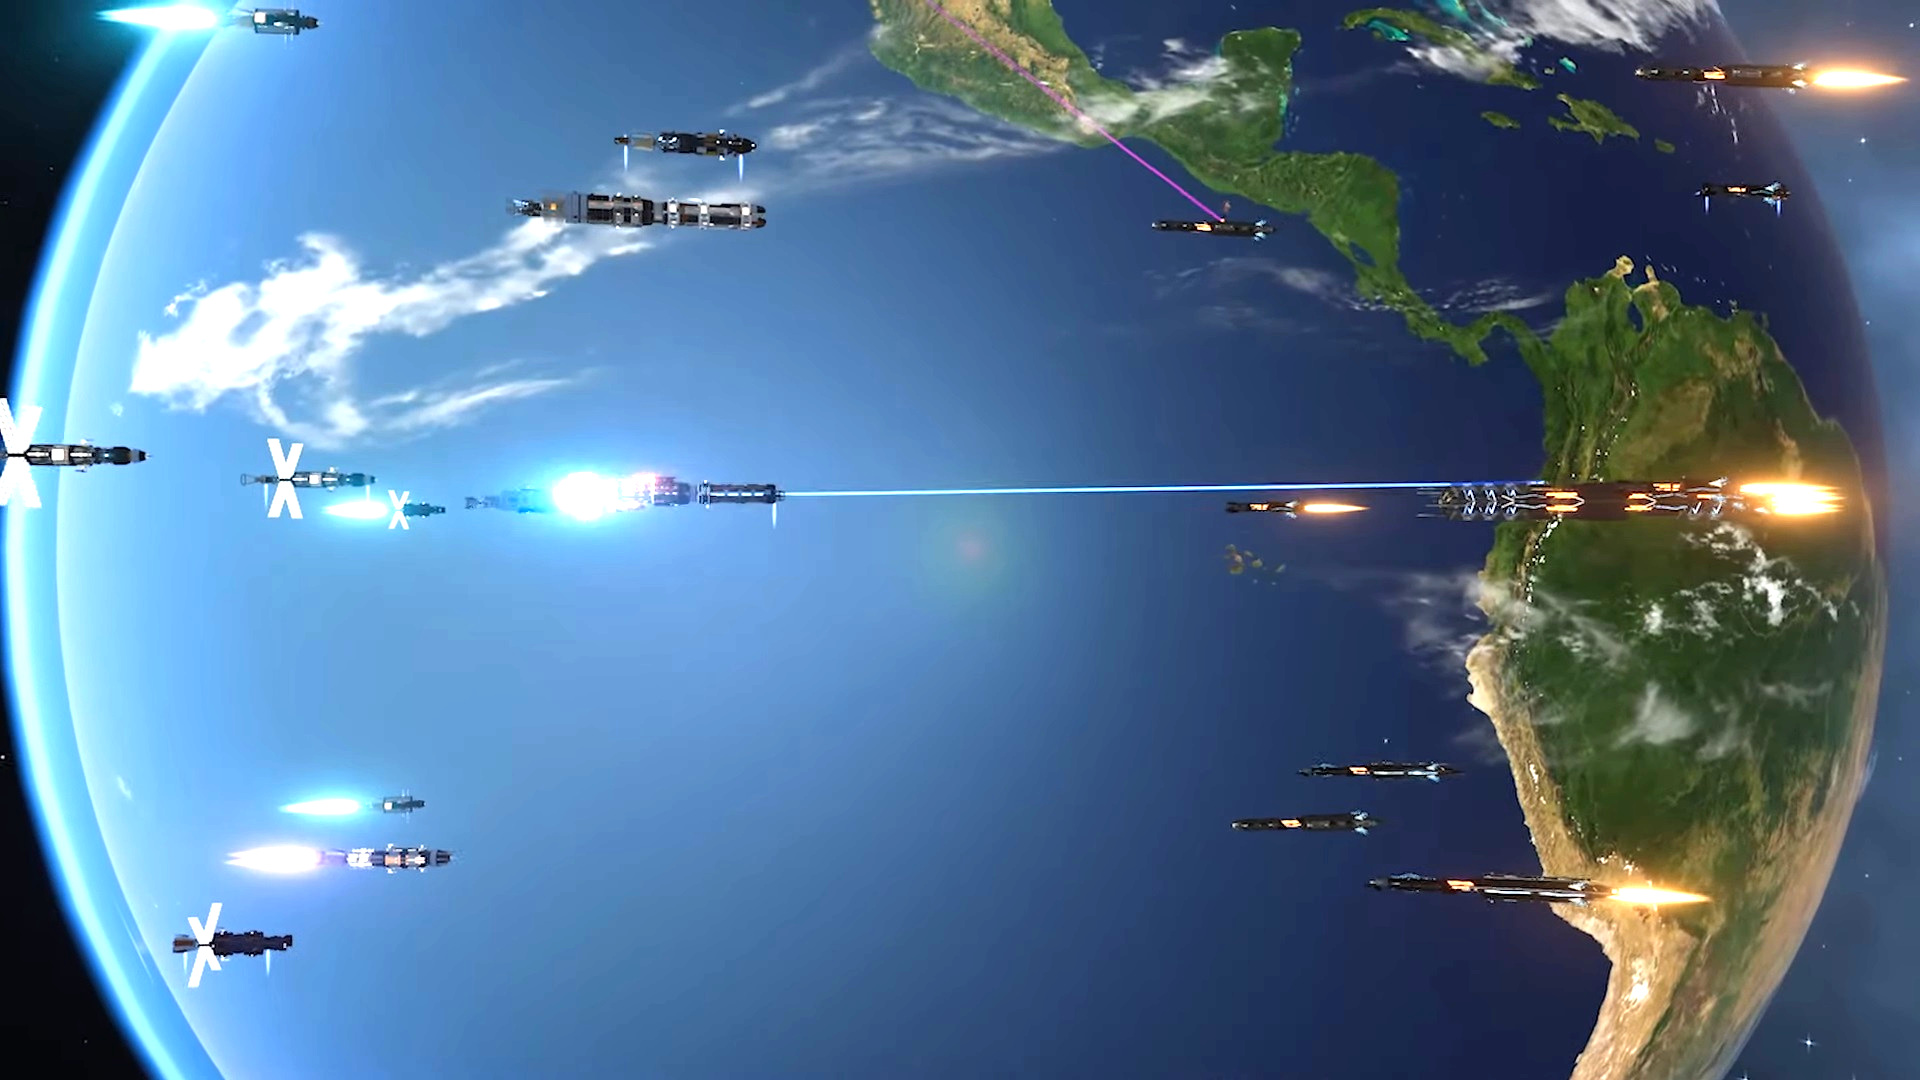 Terra Invicta takes XCOM and turns it into an Expanse-style grand strategy game